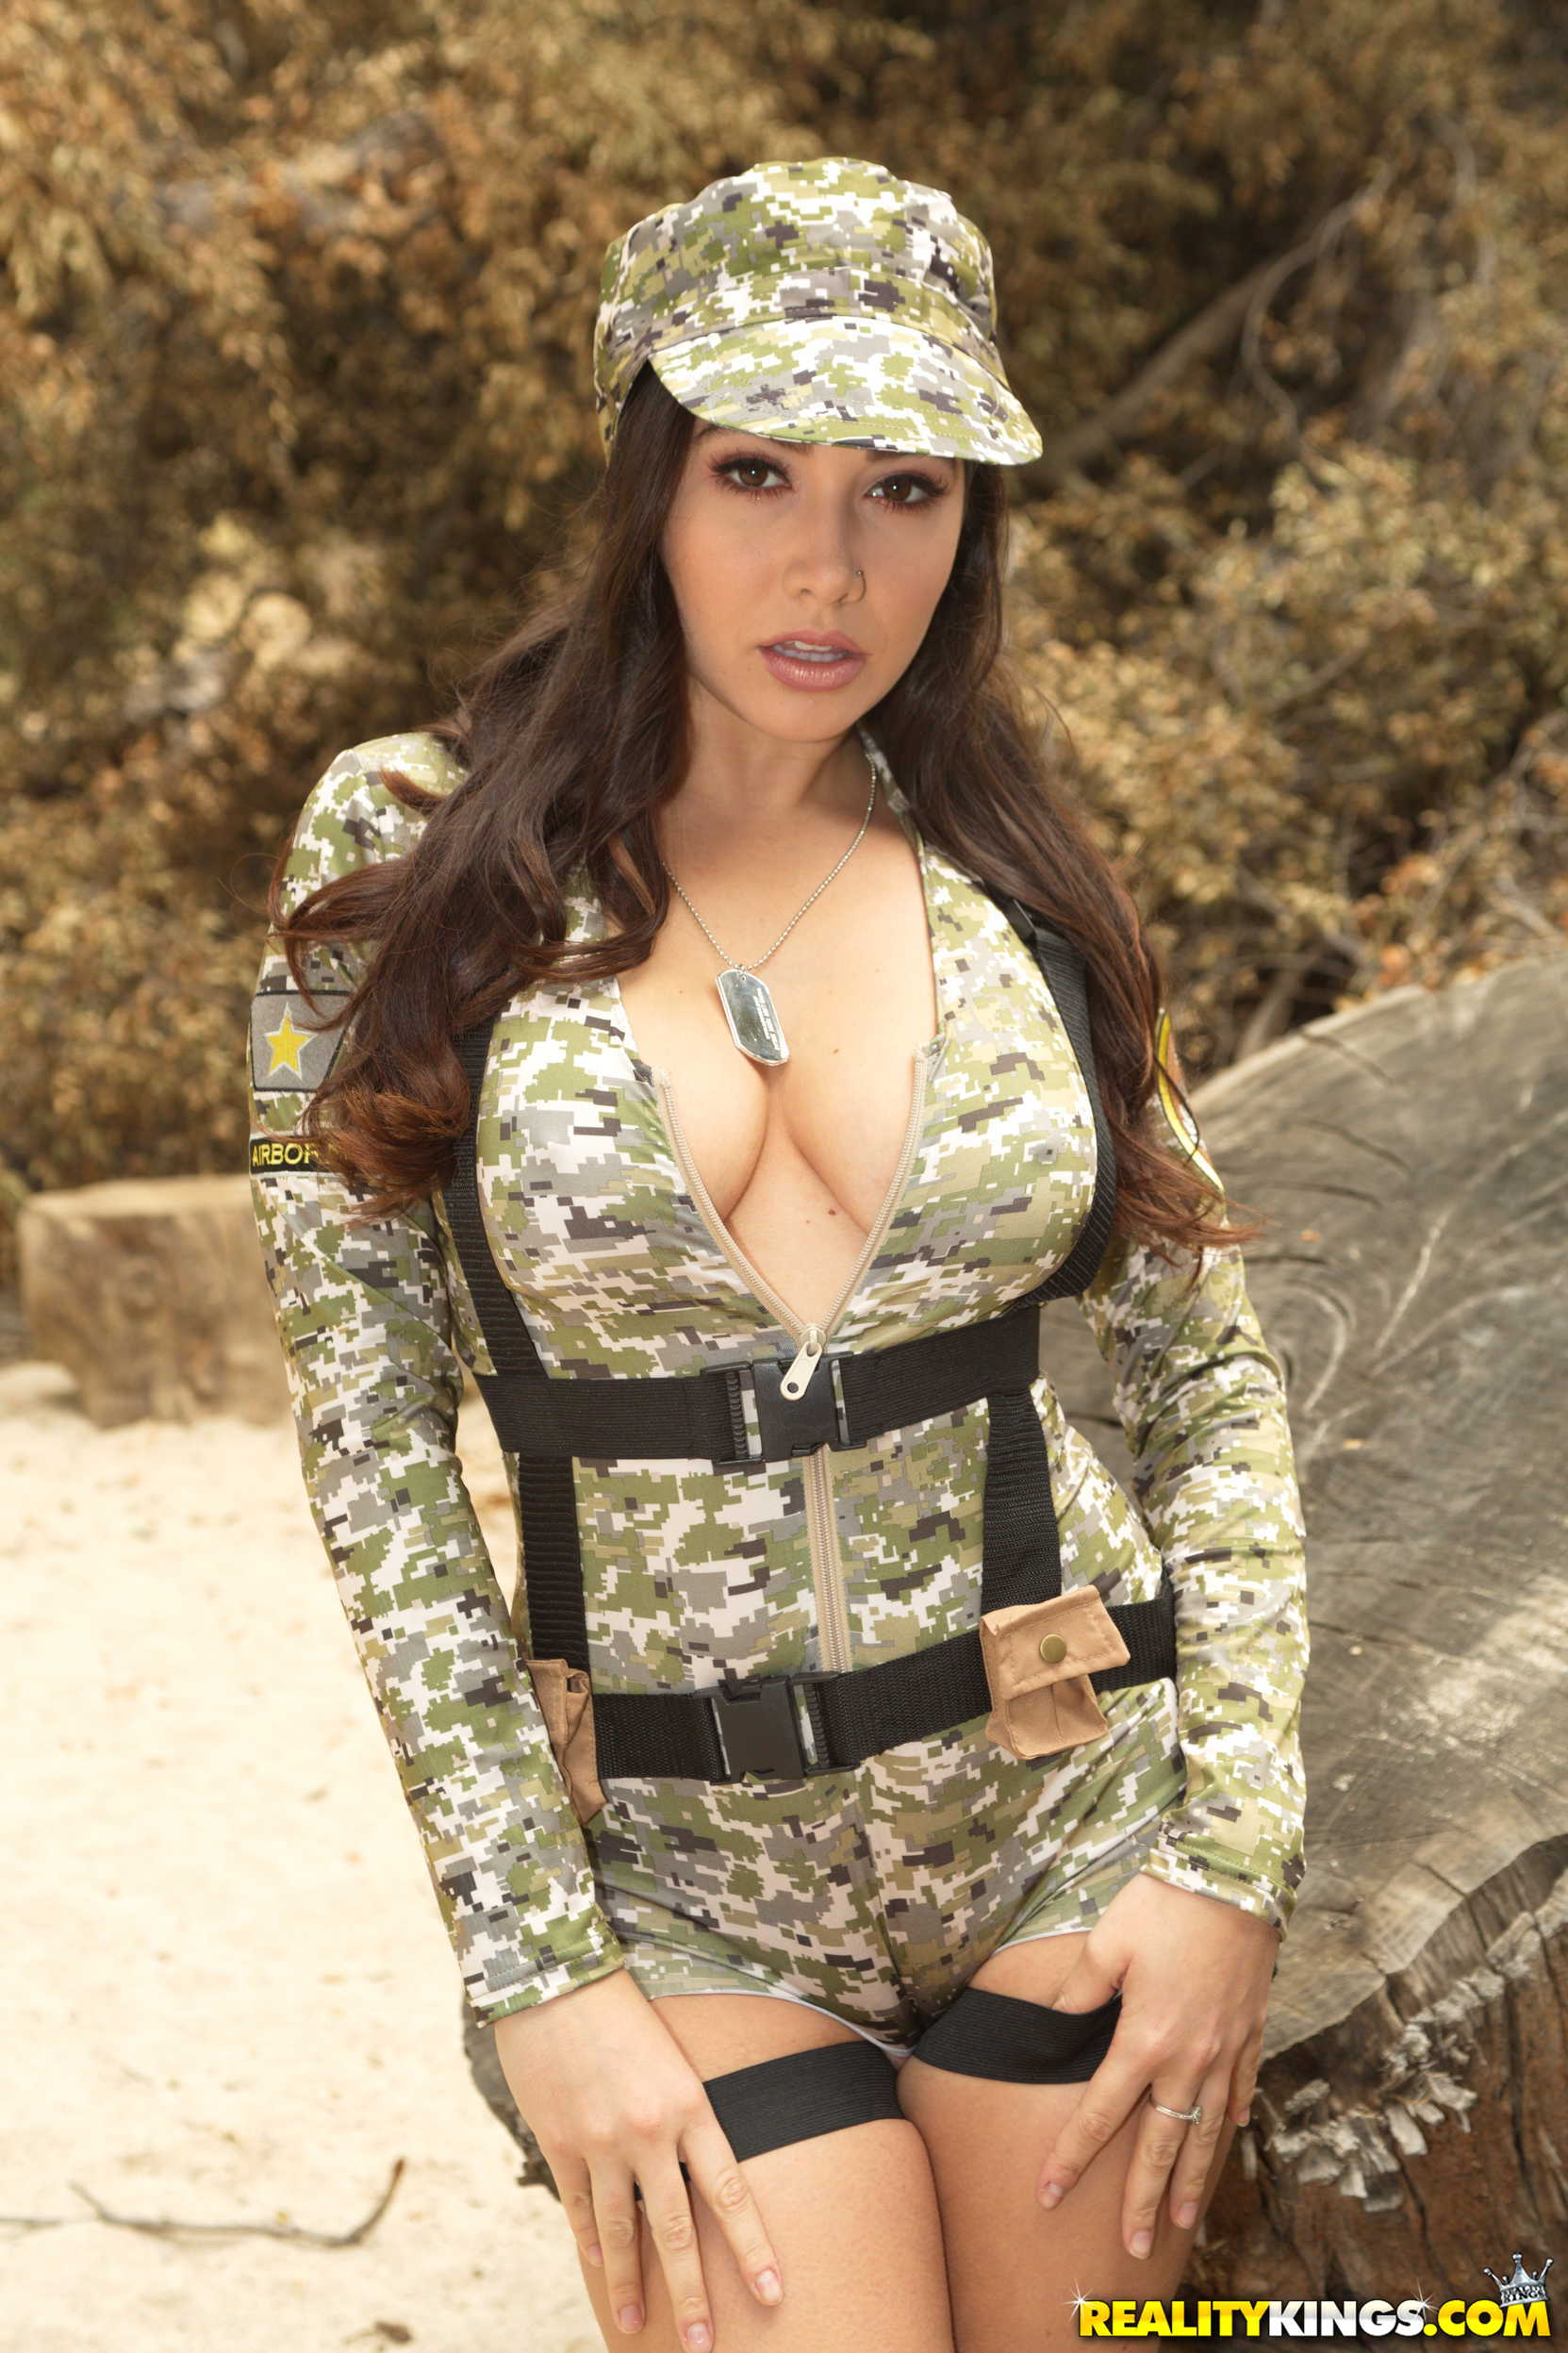 Reality Kings 'Commando Coochies' starring Karlee Grey (photo 1)